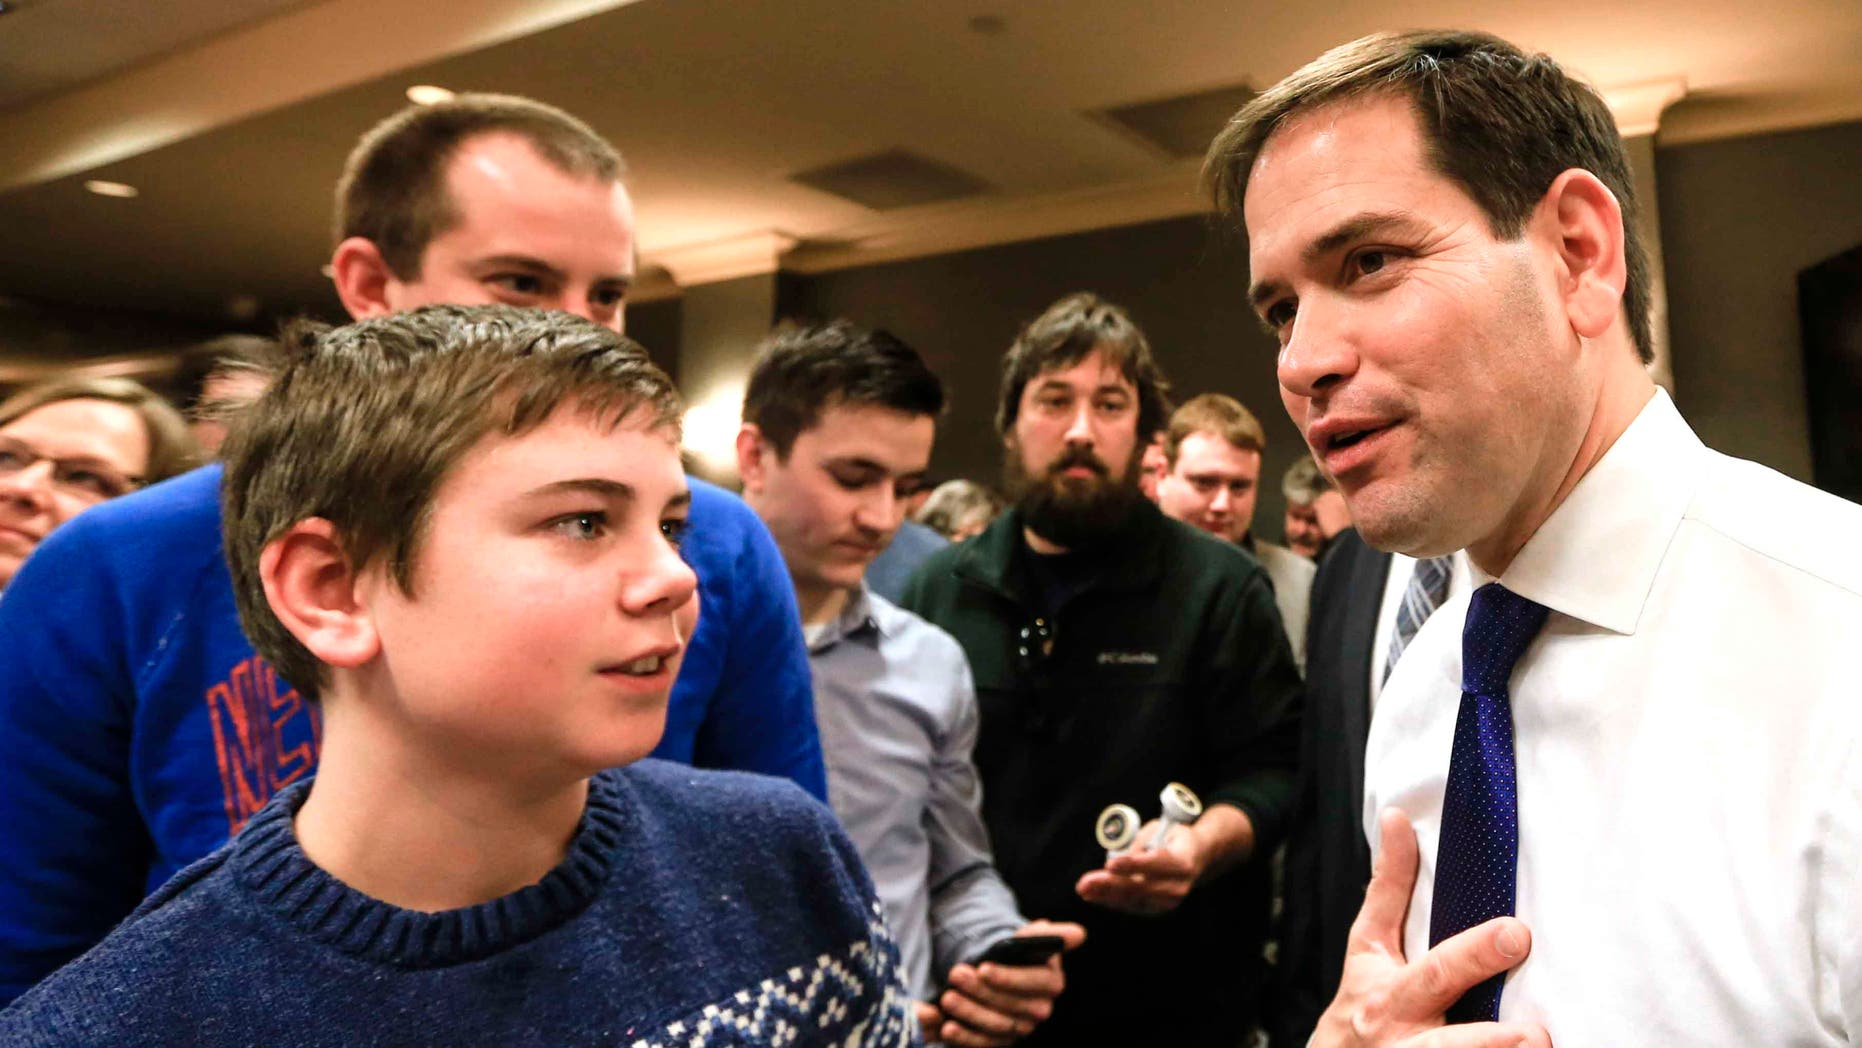 Rubio talks to members of the audience following a campaign stop in Iowa, Sat. Jan. 16, 2016.